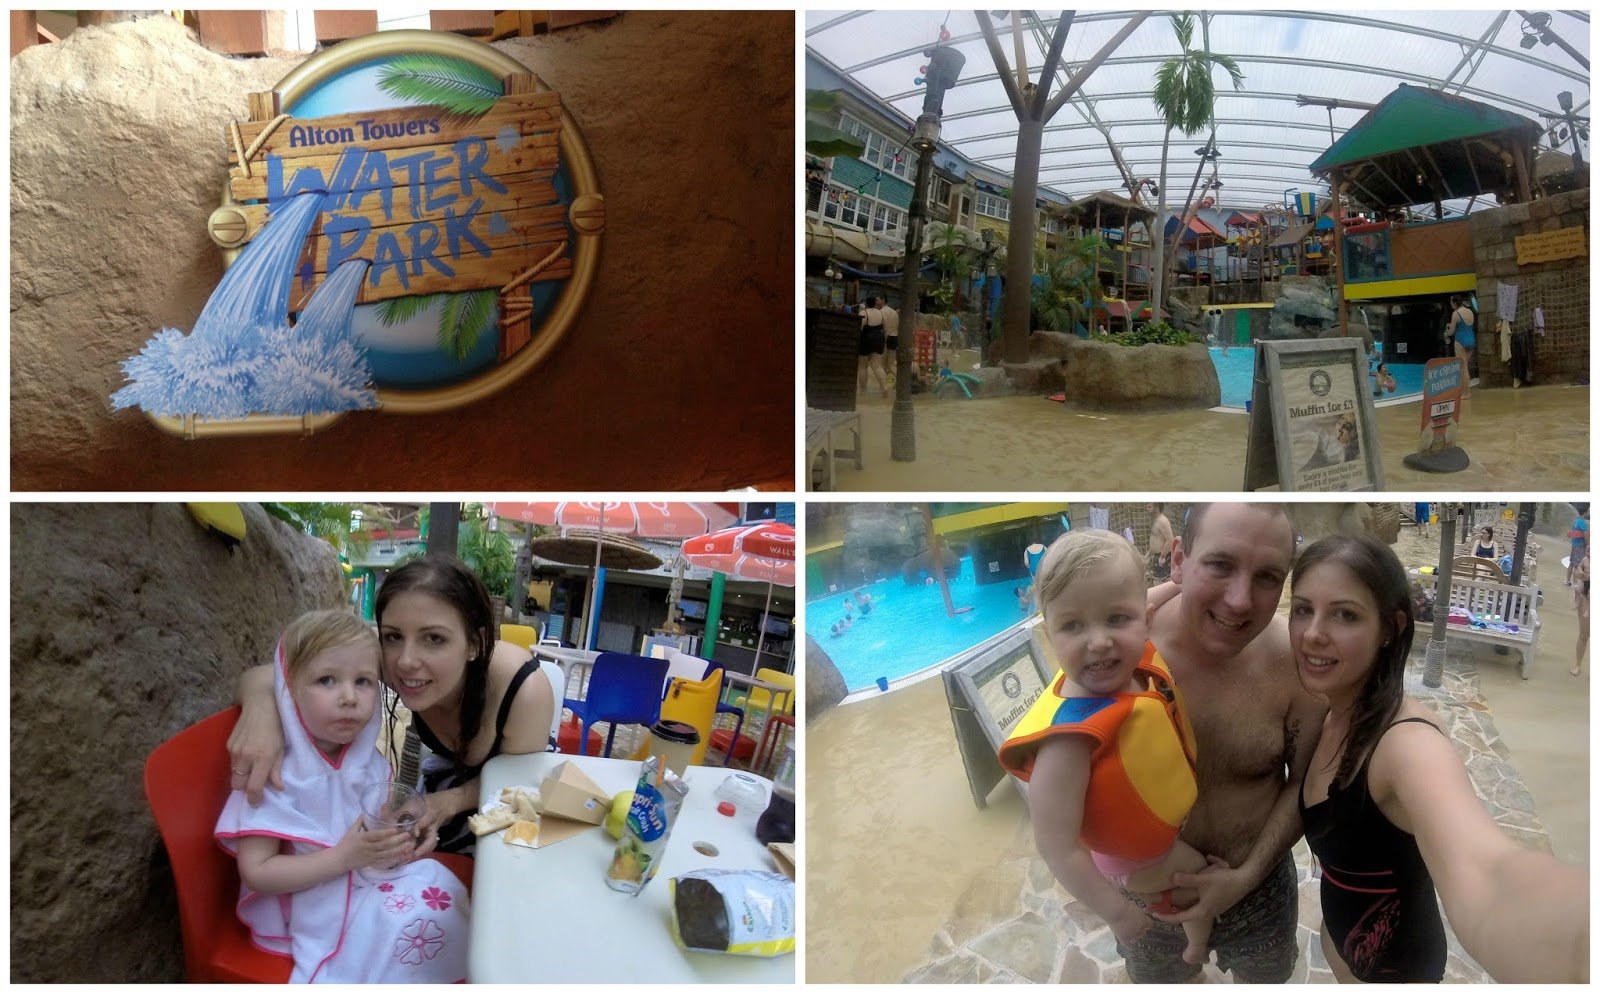 alton towers review waterpark